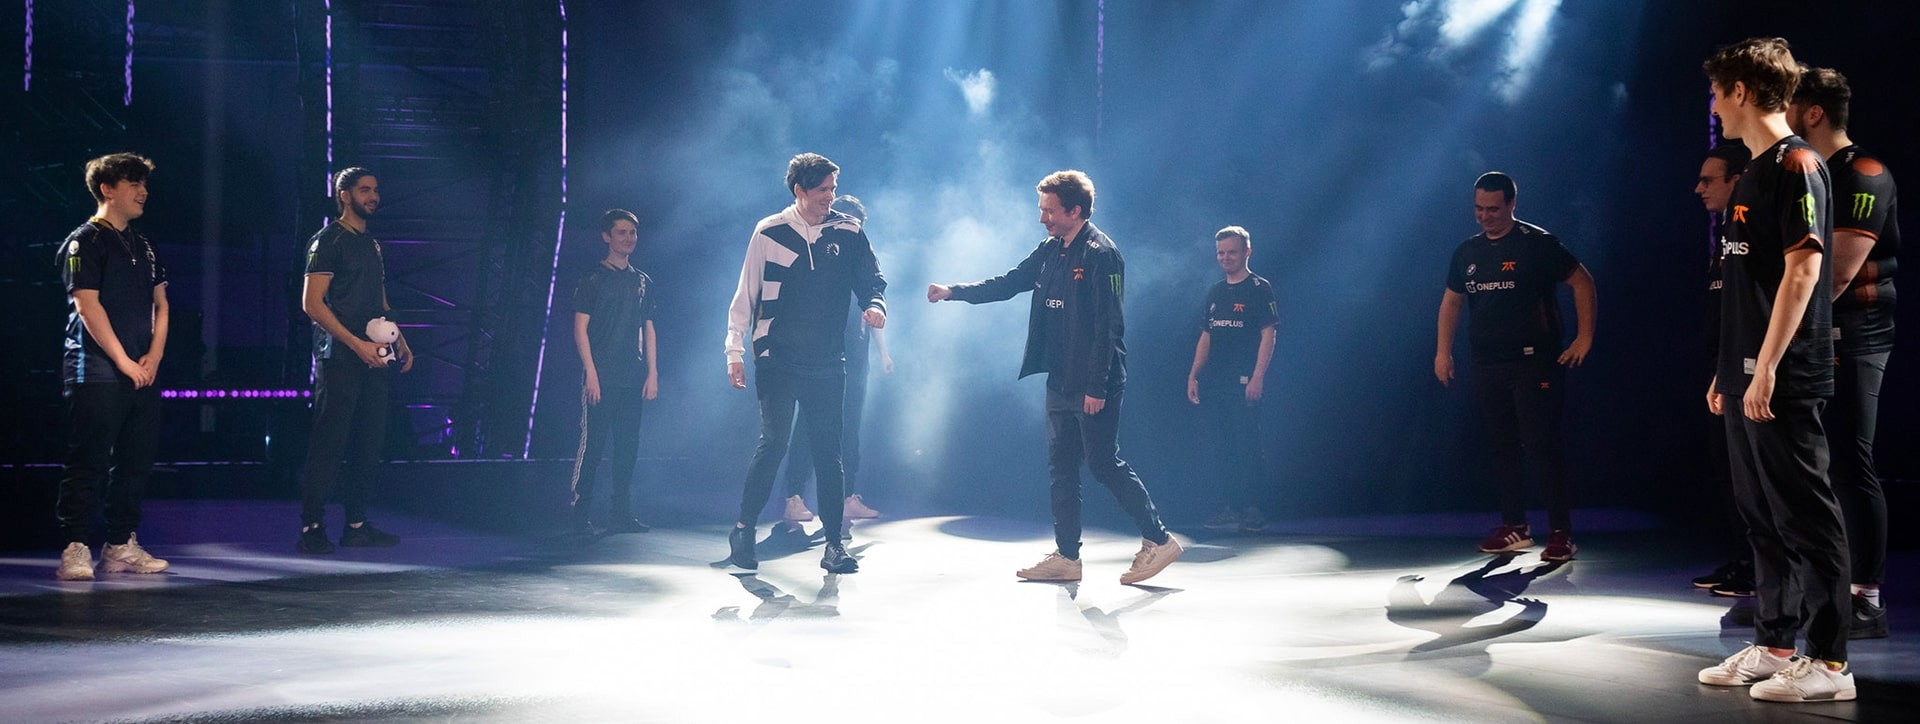 Stage 2 EMEA finalists to rematch at Main Event 1